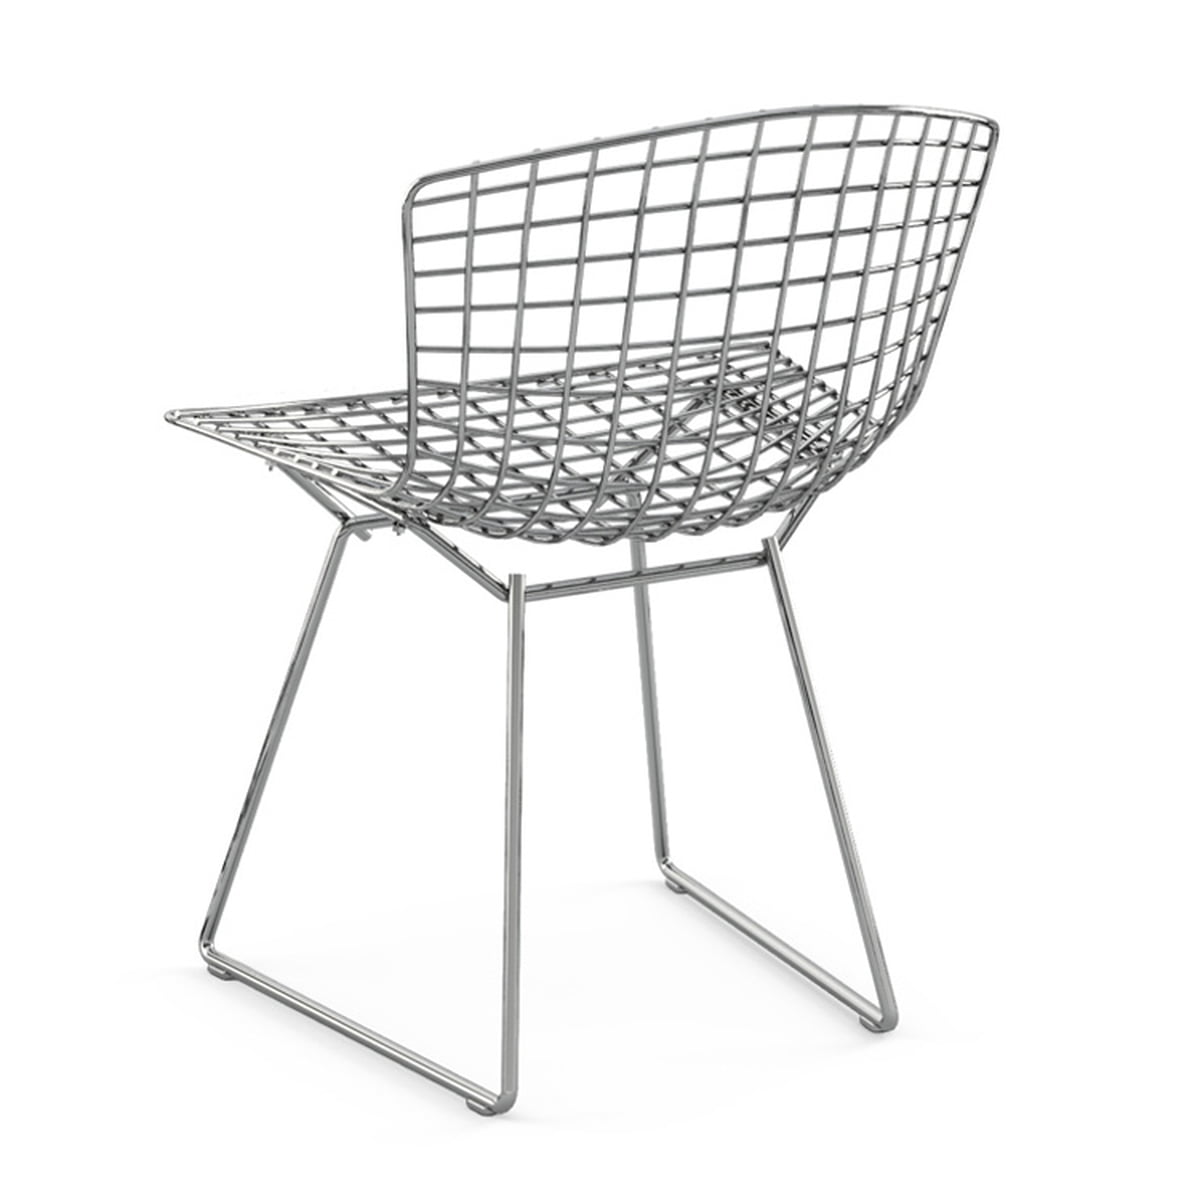 Knoll Home Design Shop: Bertoia Wire Chair By Knoll In The Home Design Shop